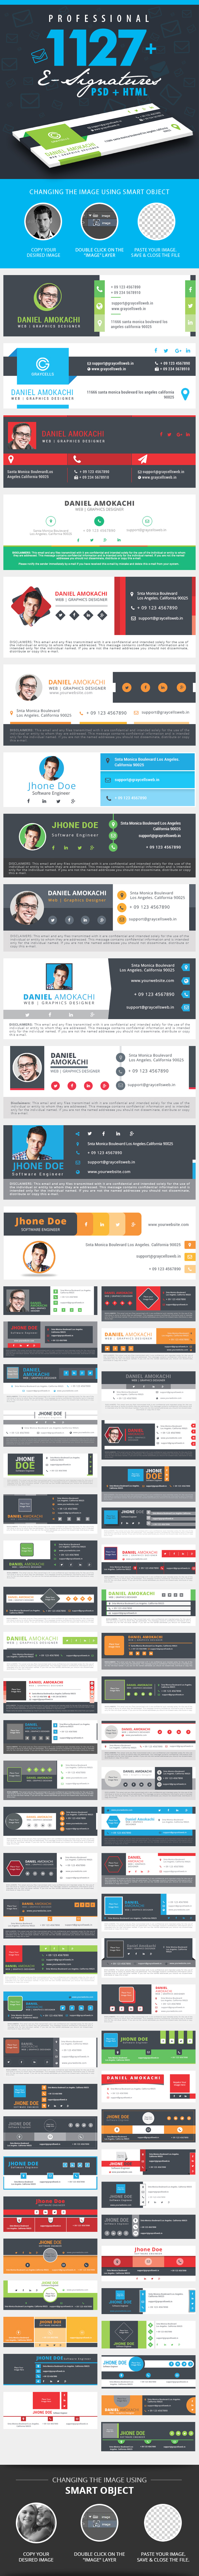 1127 Email Signature PSD + HTML by graycells-graphic on DeviantArt